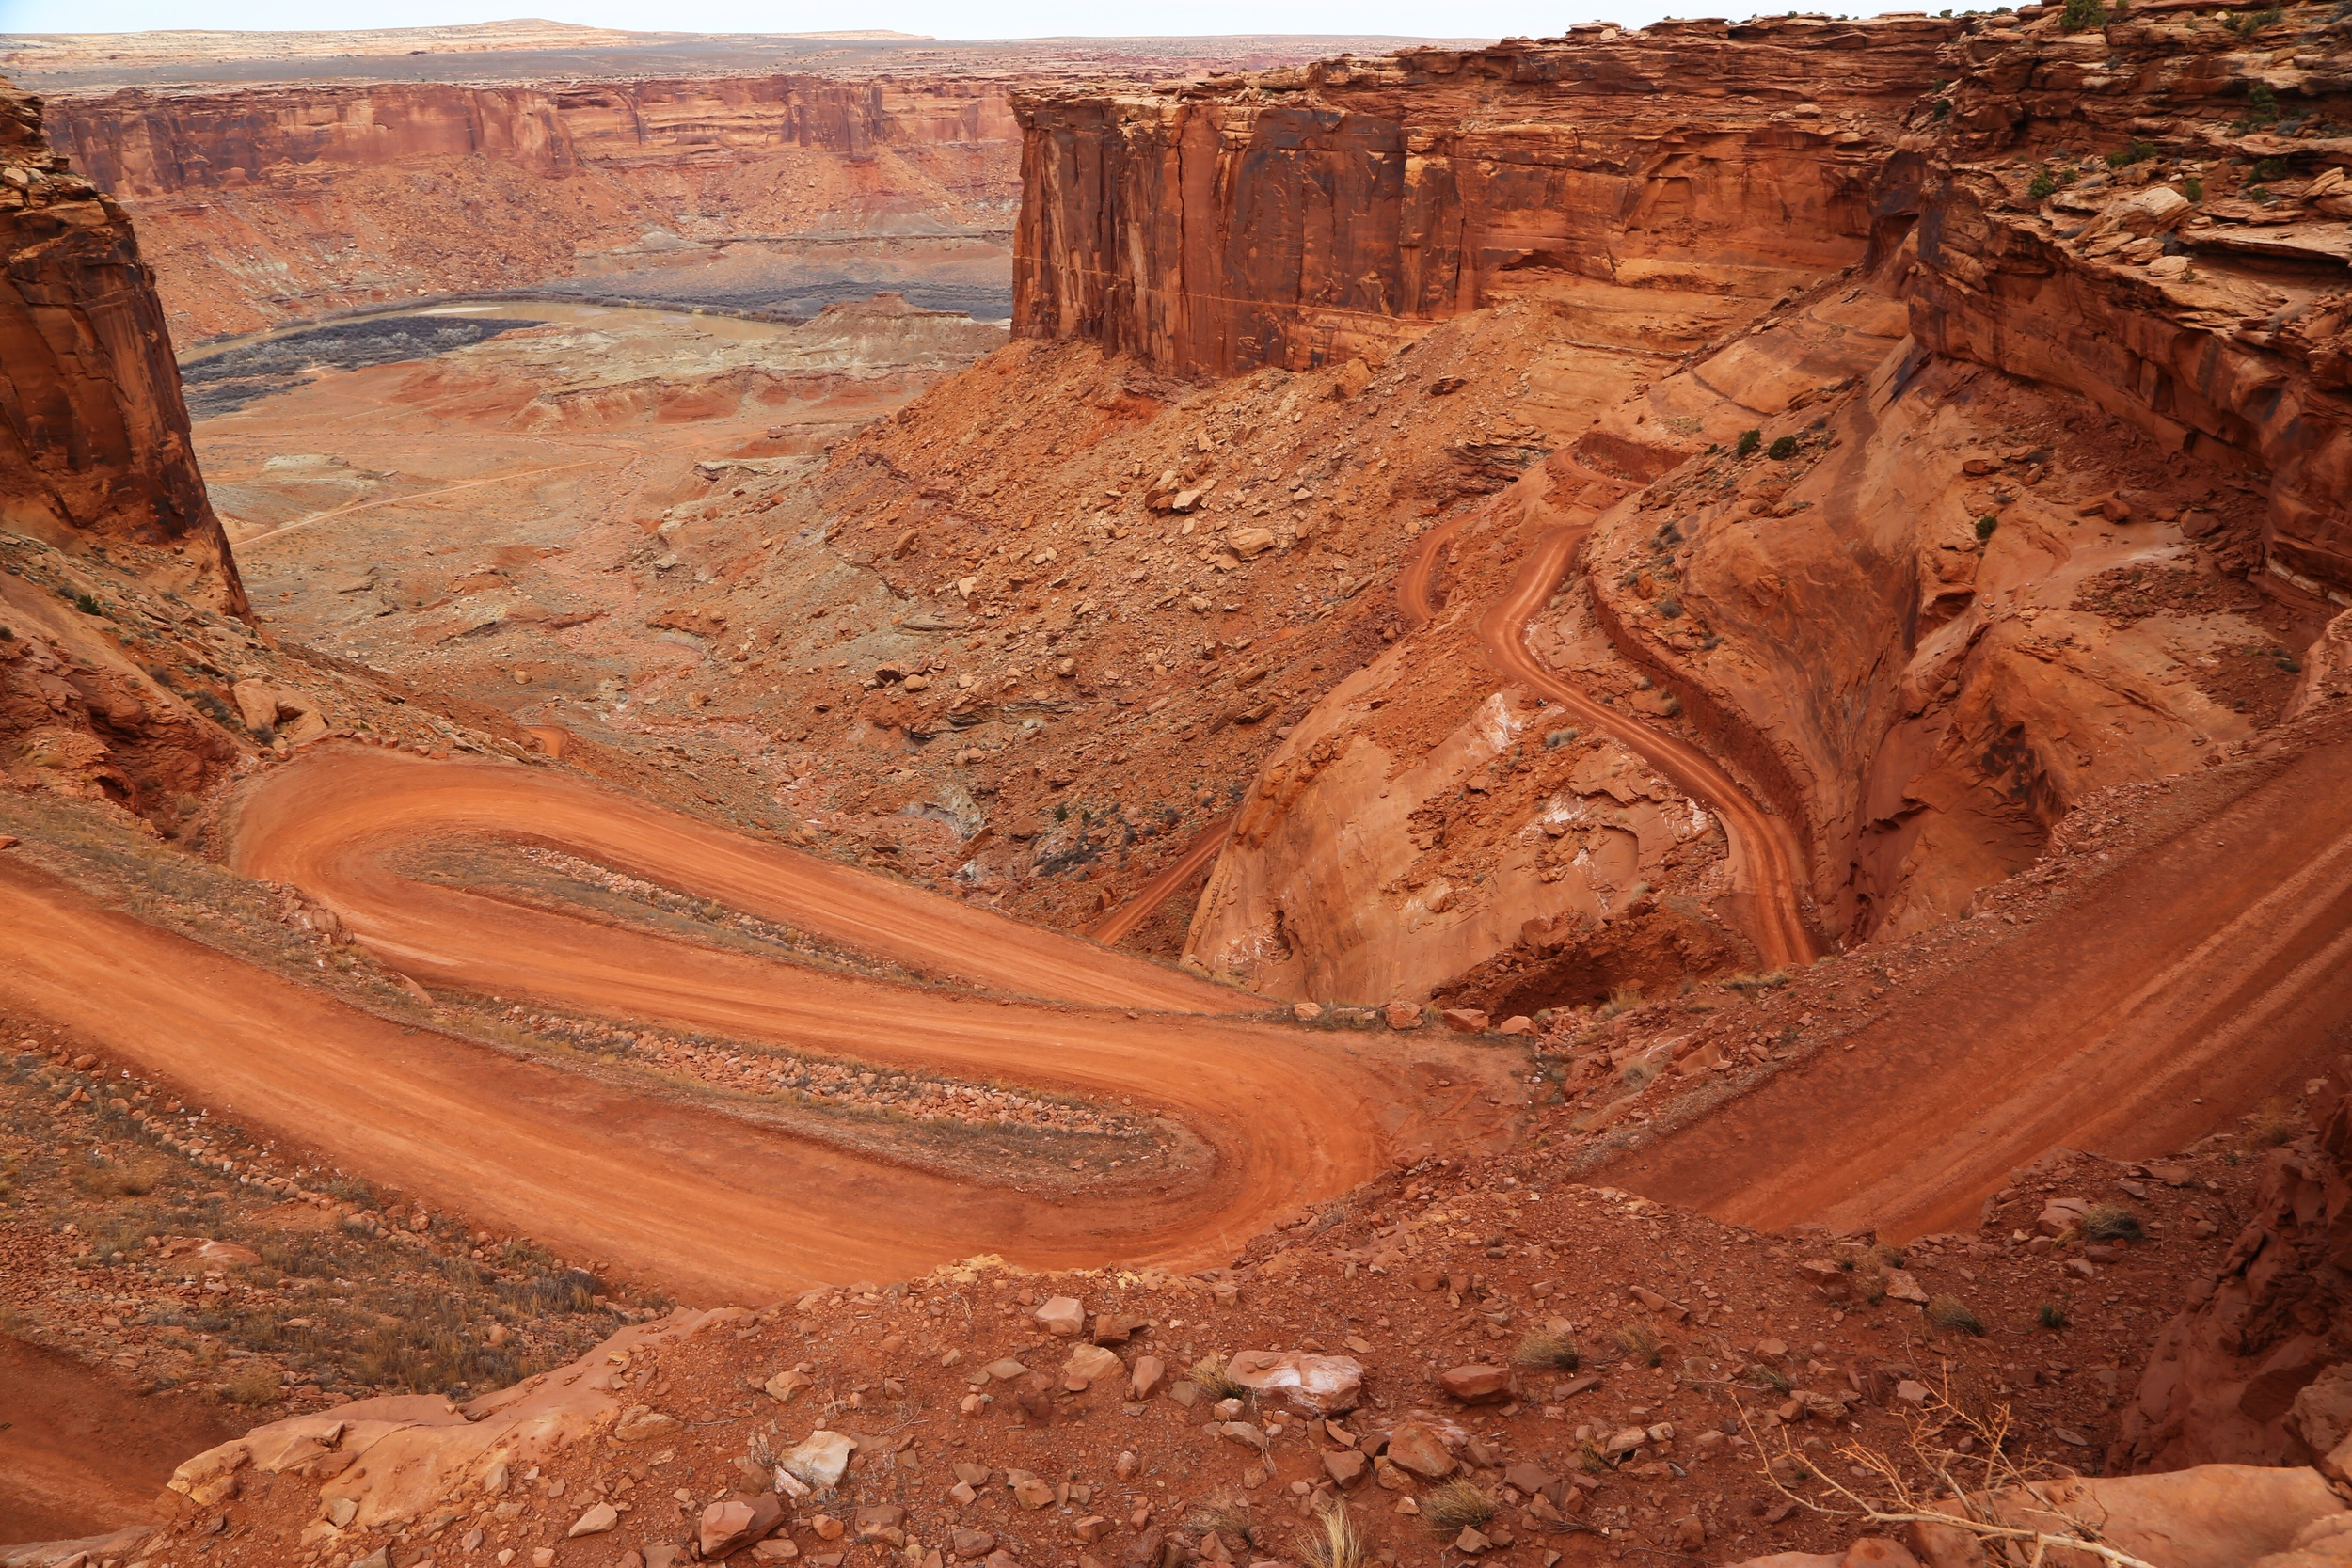 End of our journey, the beginning for others, White Rim Road, Canyonlands NP